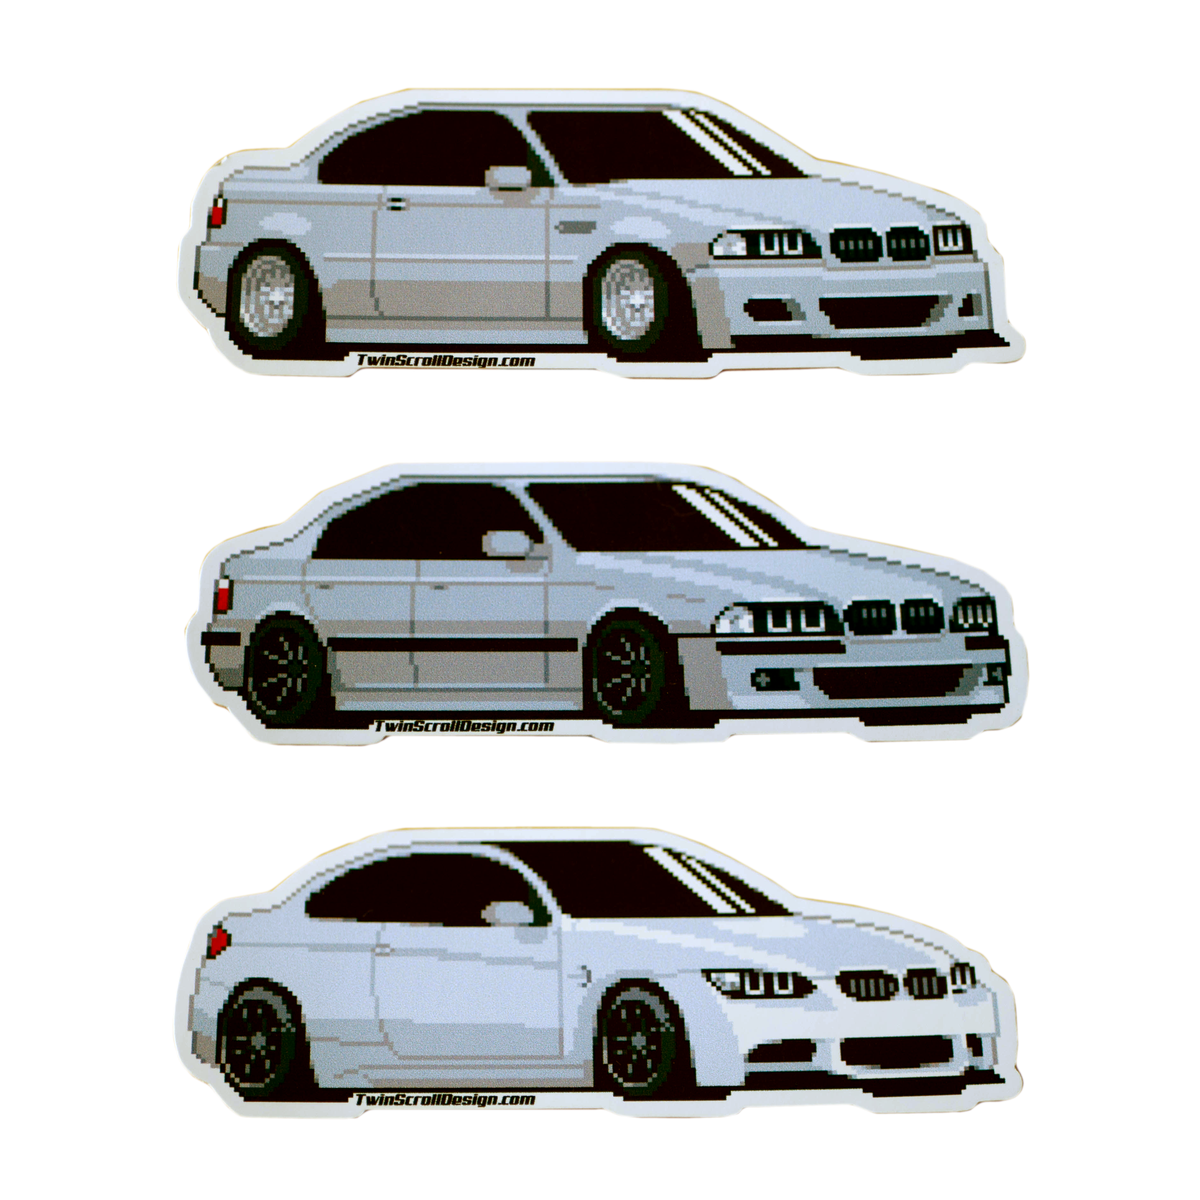 Image of e46 // e39 // e92 sticker pack